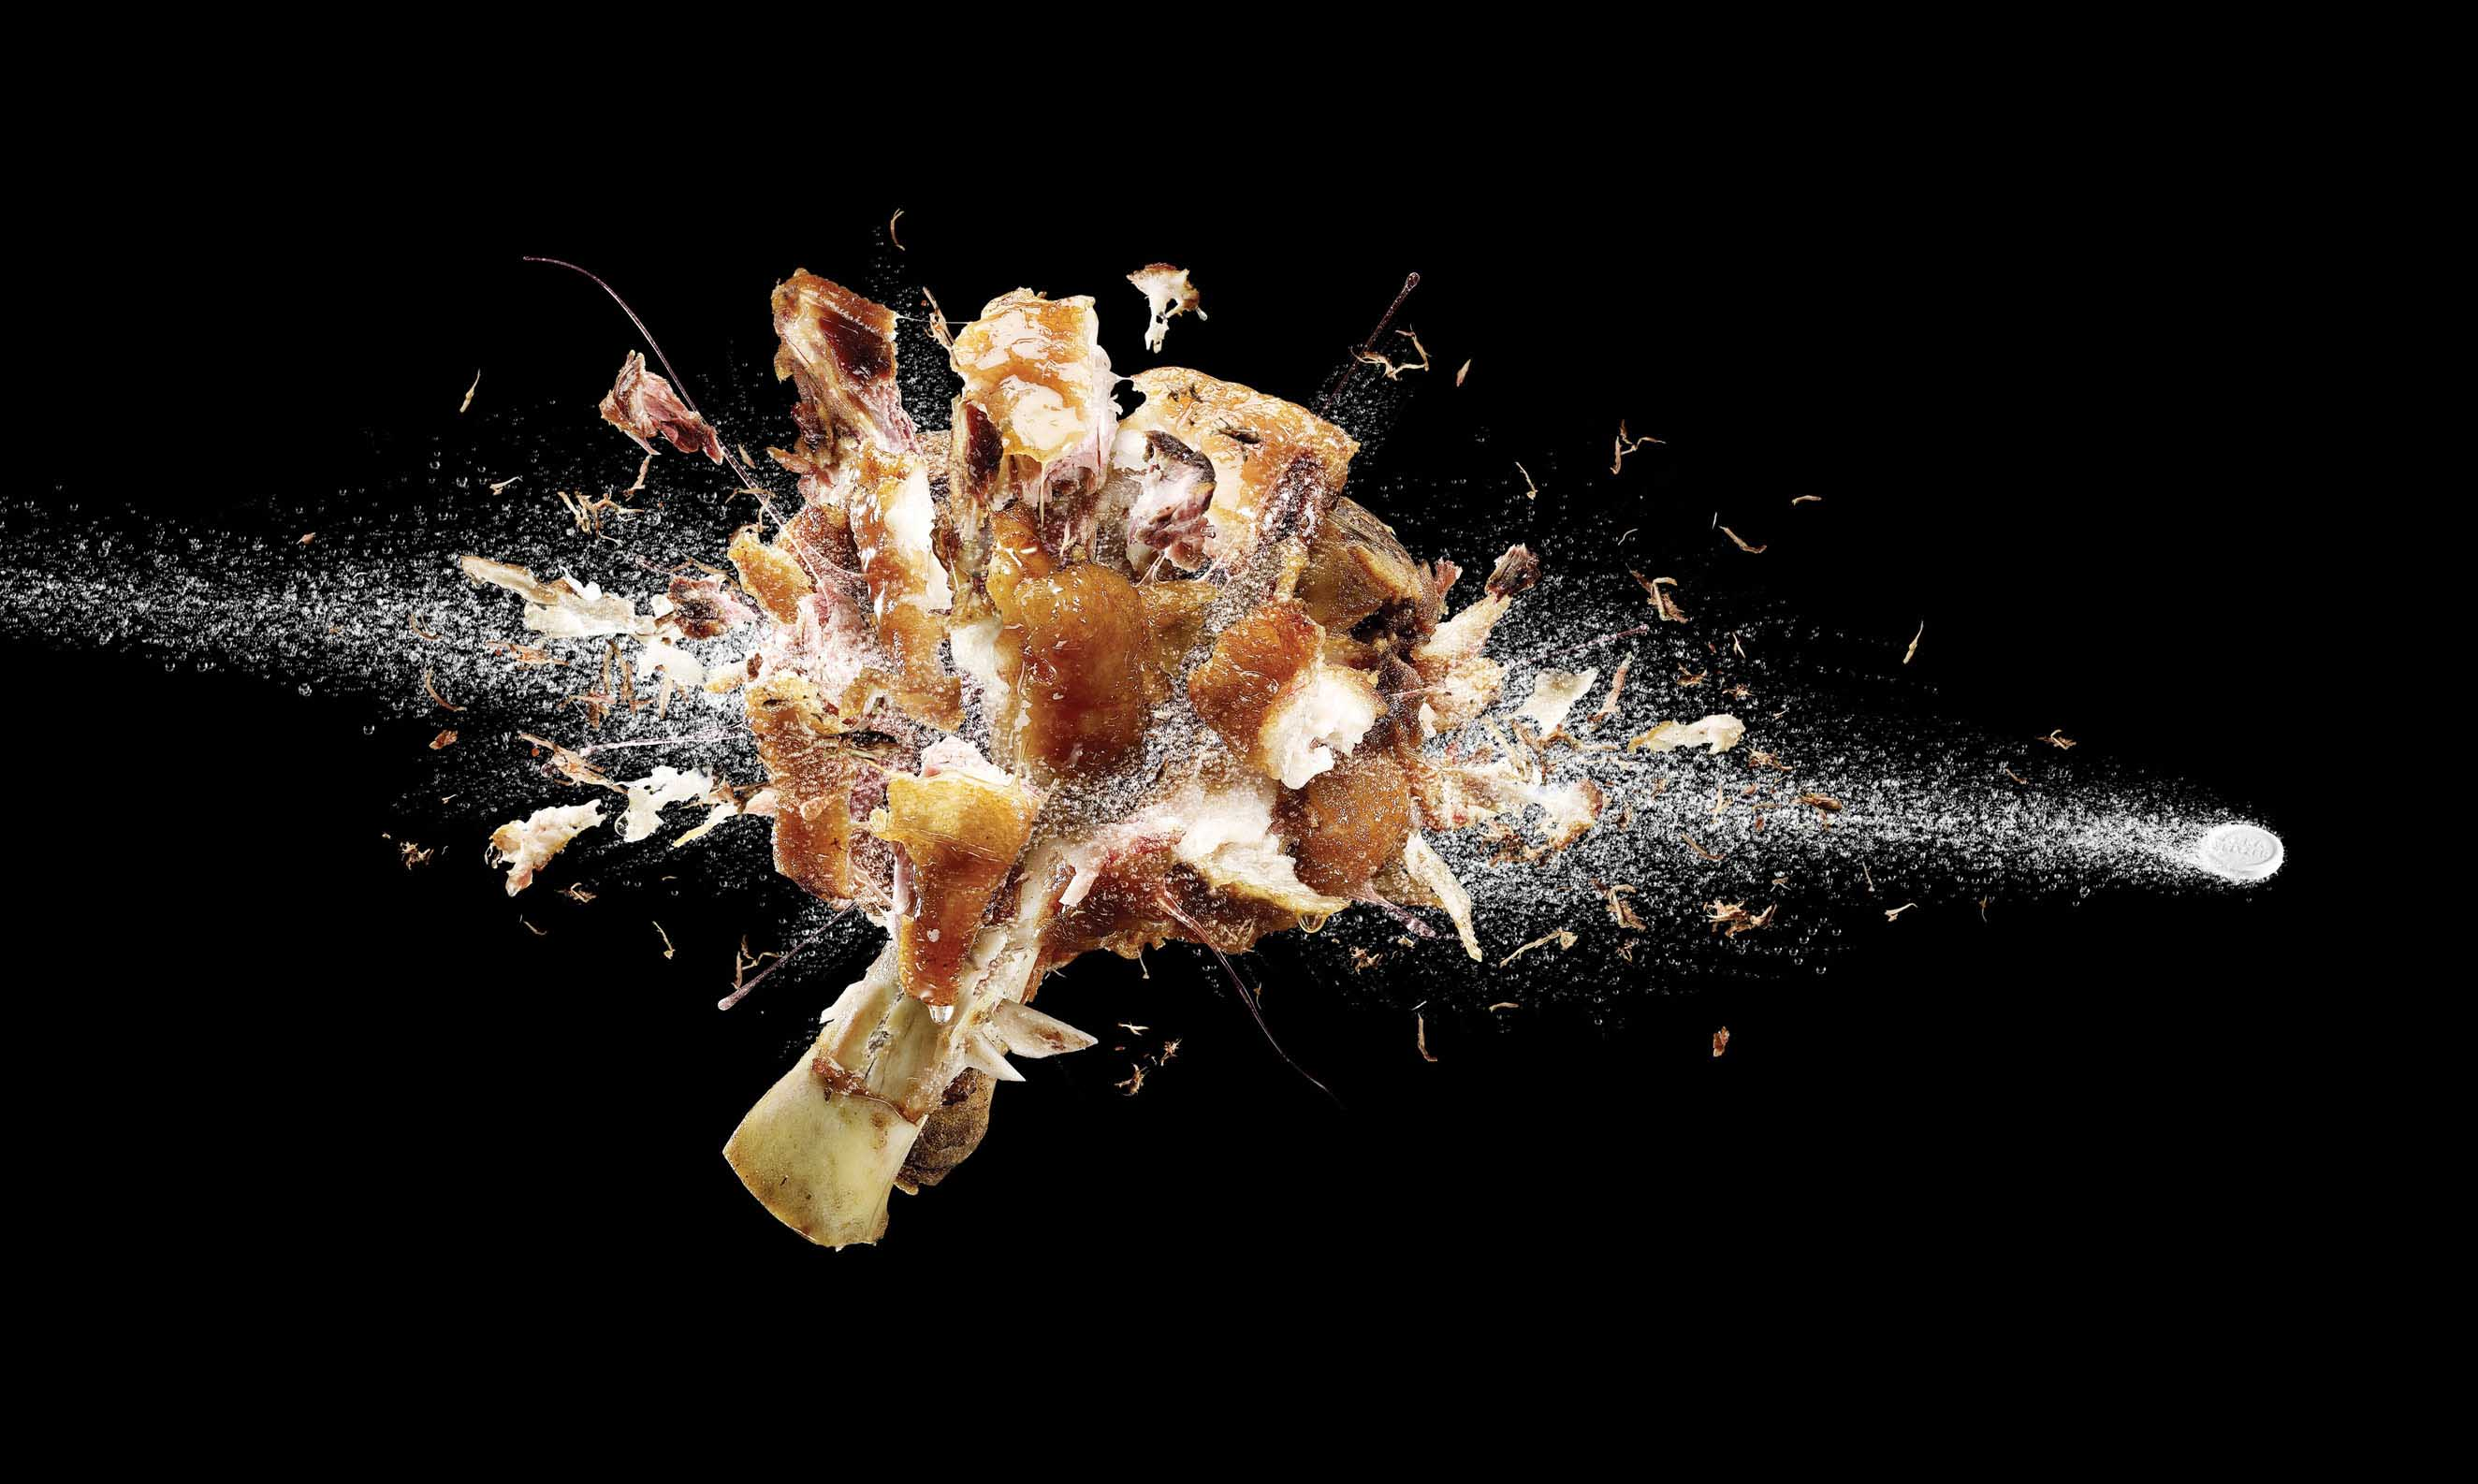 Slow motion explosion hd wallpapers - university of georgia photo archives